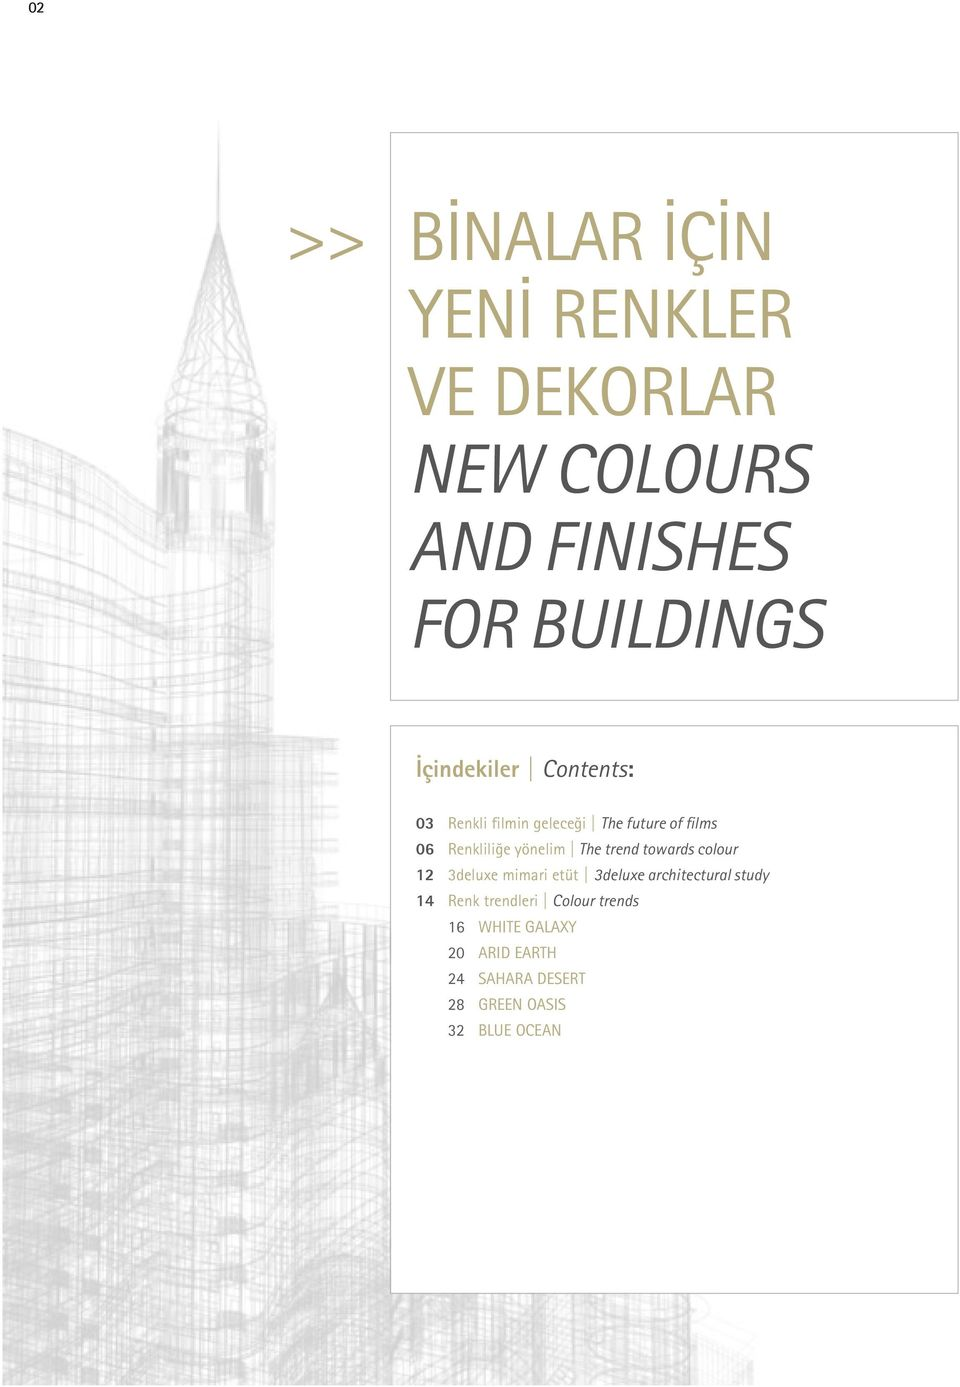 yönelim The trend towards colour 12 3deluxe mimari etüt 3deluxe architectural study 14